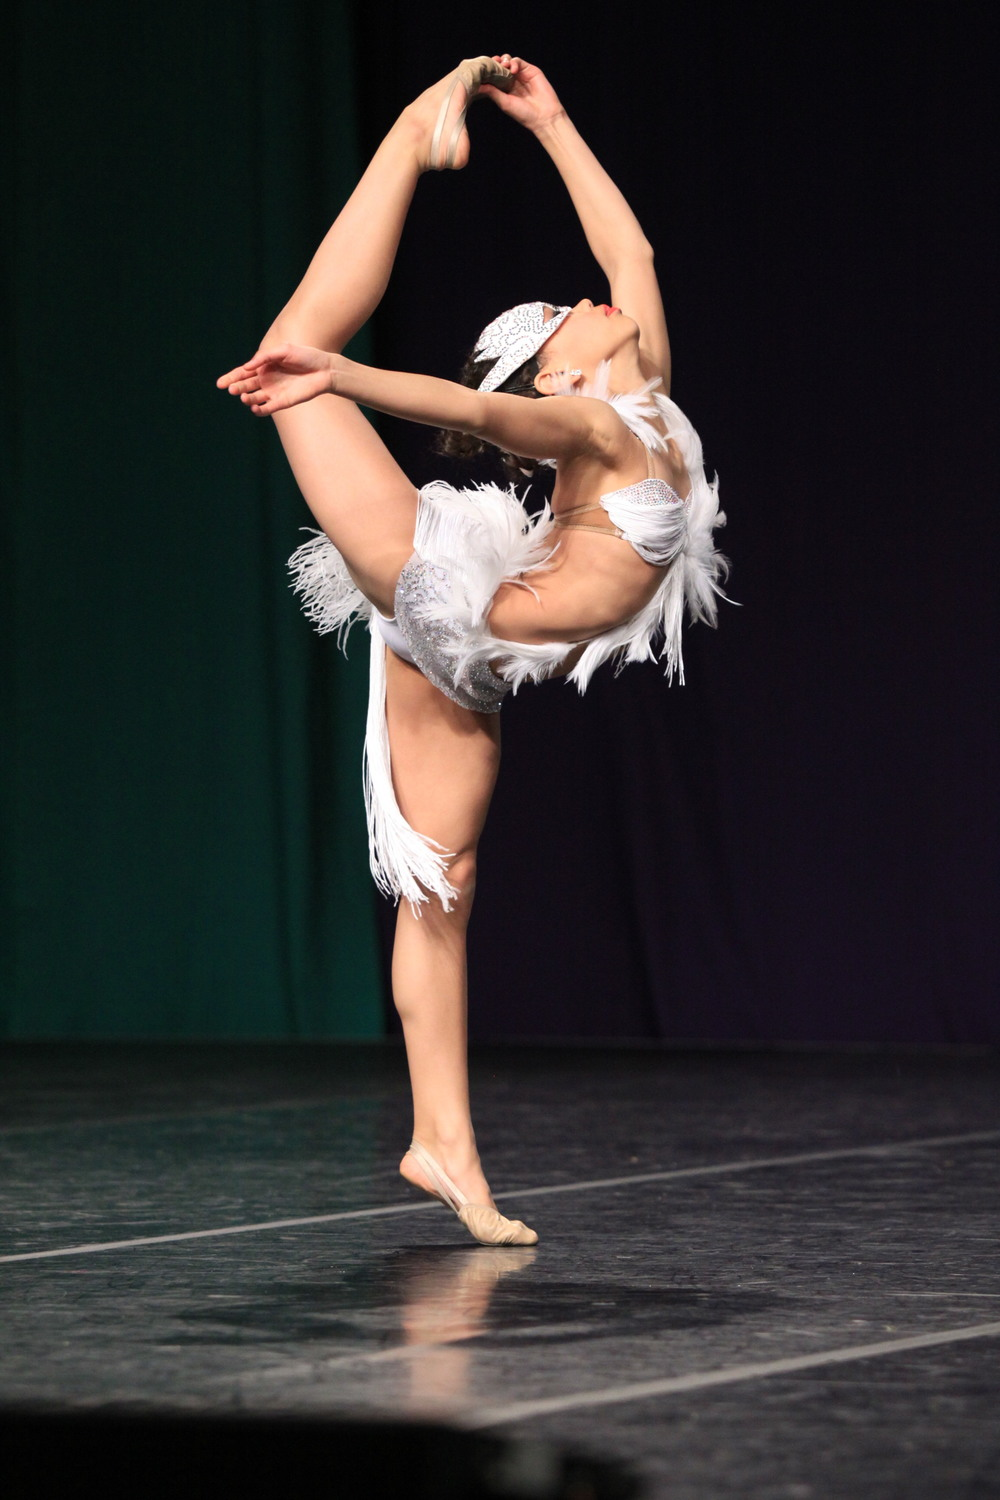 2010 - Malia Oliver from Energy Dance Center